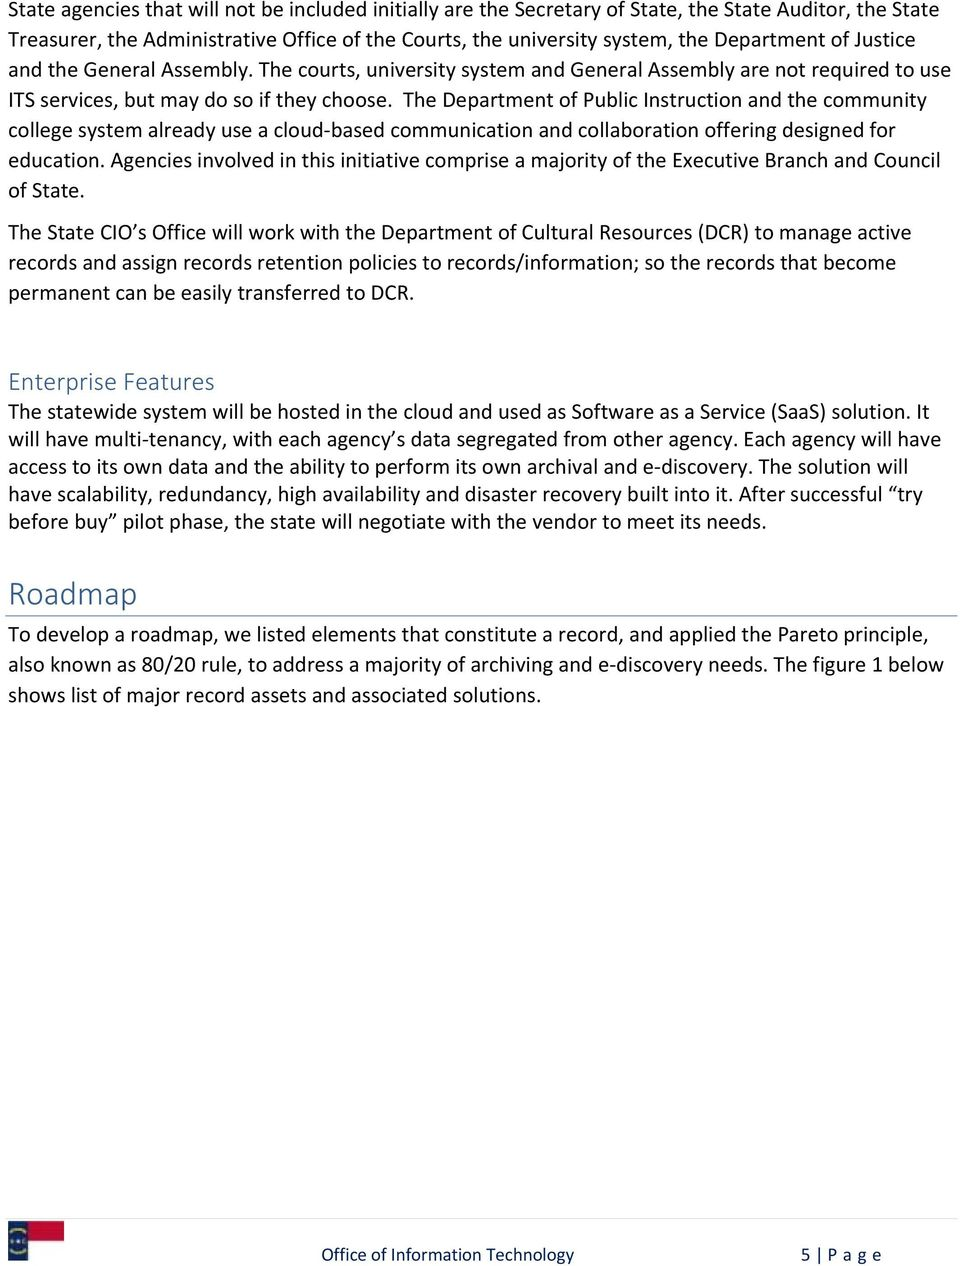 The Department of Public Instruction and the community college system already use a cloud based communication and collaboration offering designed for education.